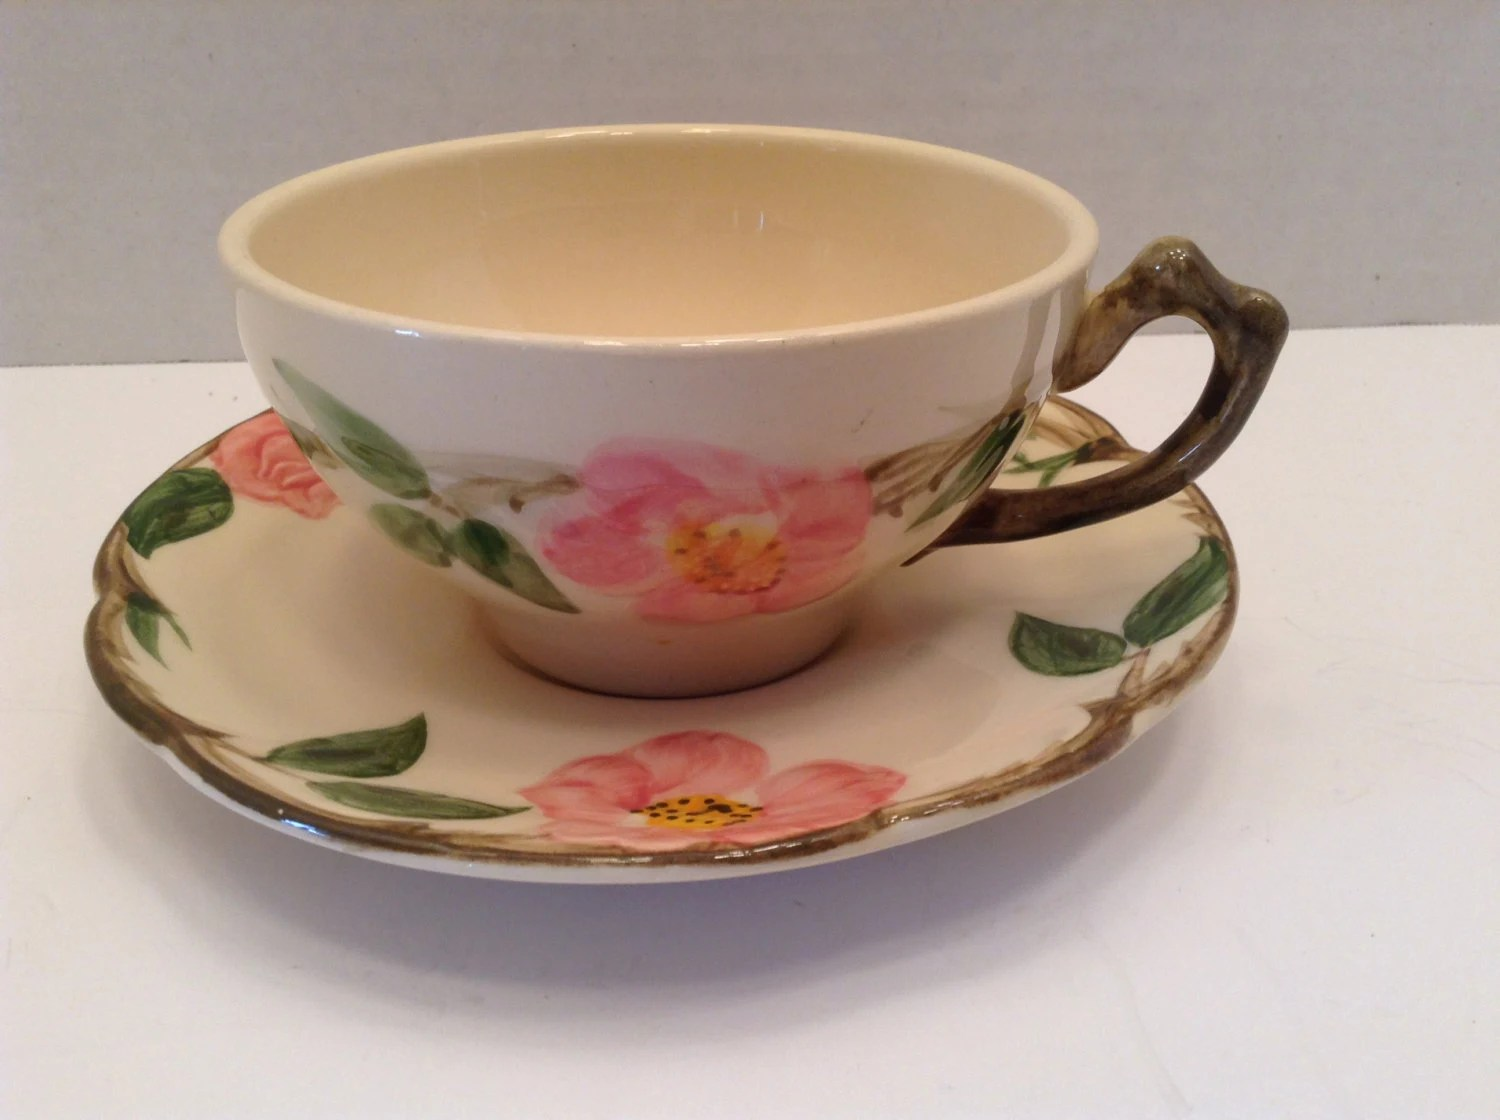 Shabby Chic Cuxhaven Franciscan Desert Rose Cup And Saucer California Pottery Shabby Chic